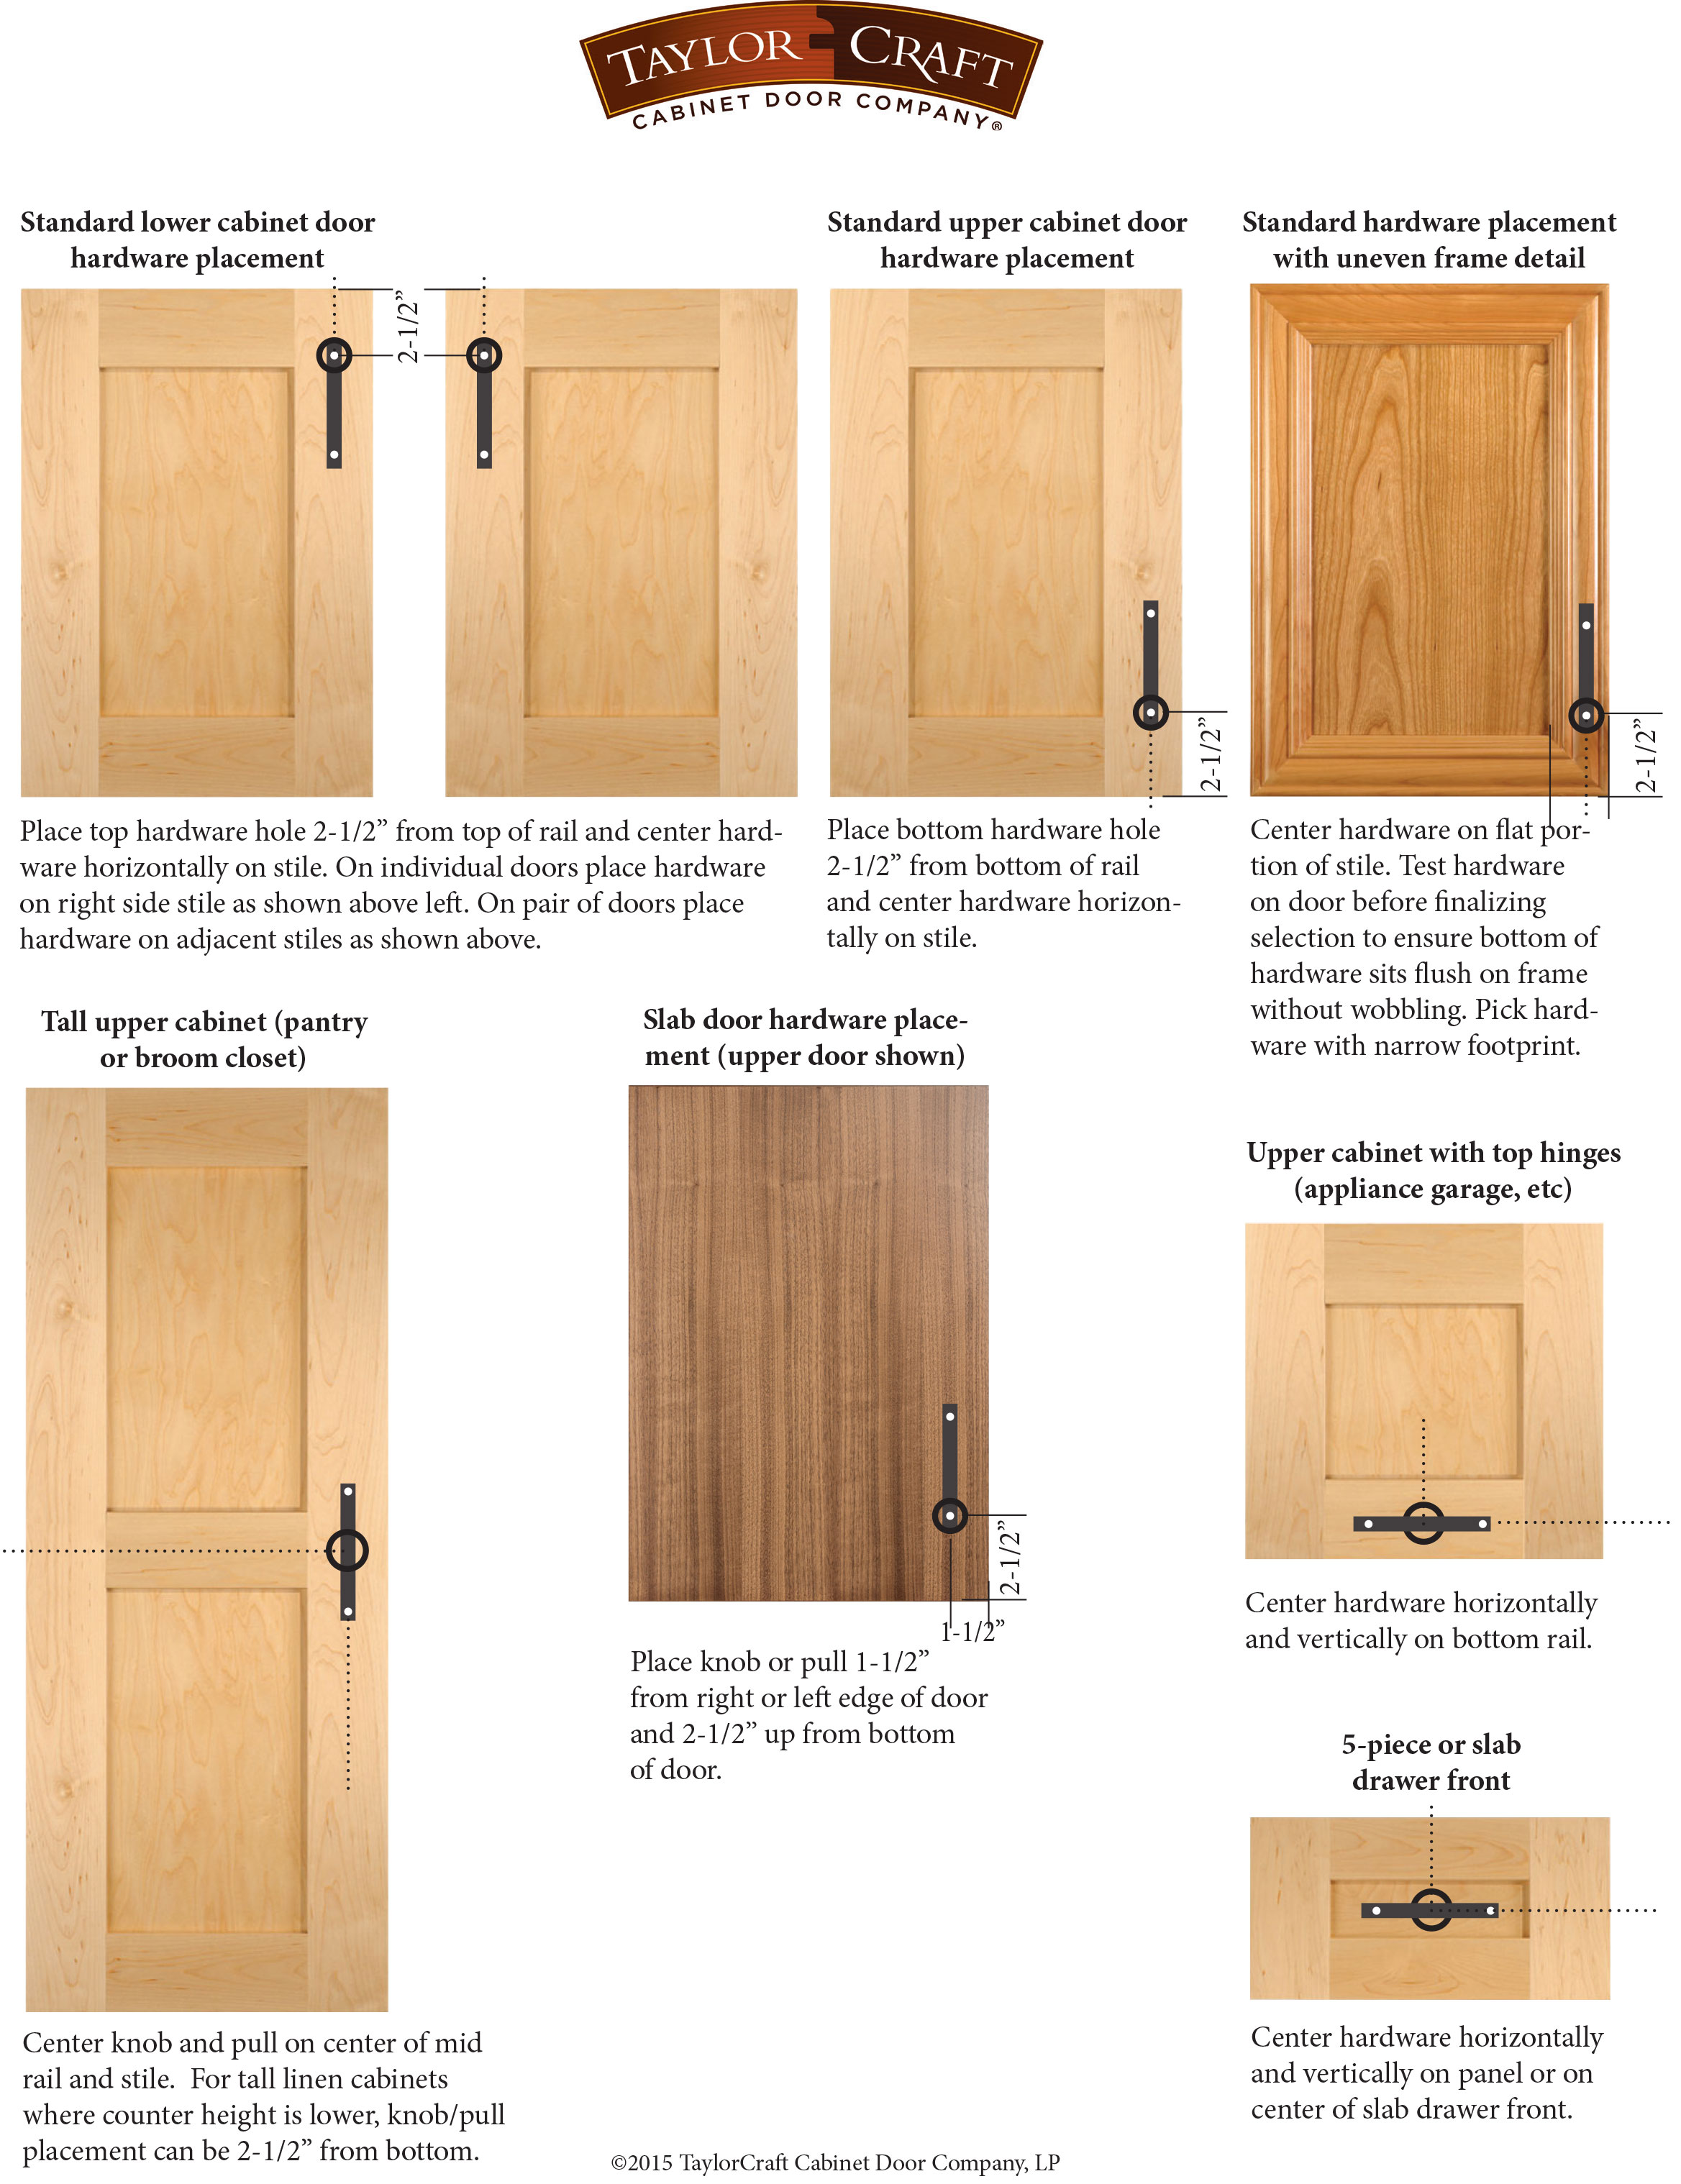 Delicieux Cabinet Door Hardware Placement Guidelines   TaylorCraft Cabinet Door  Company